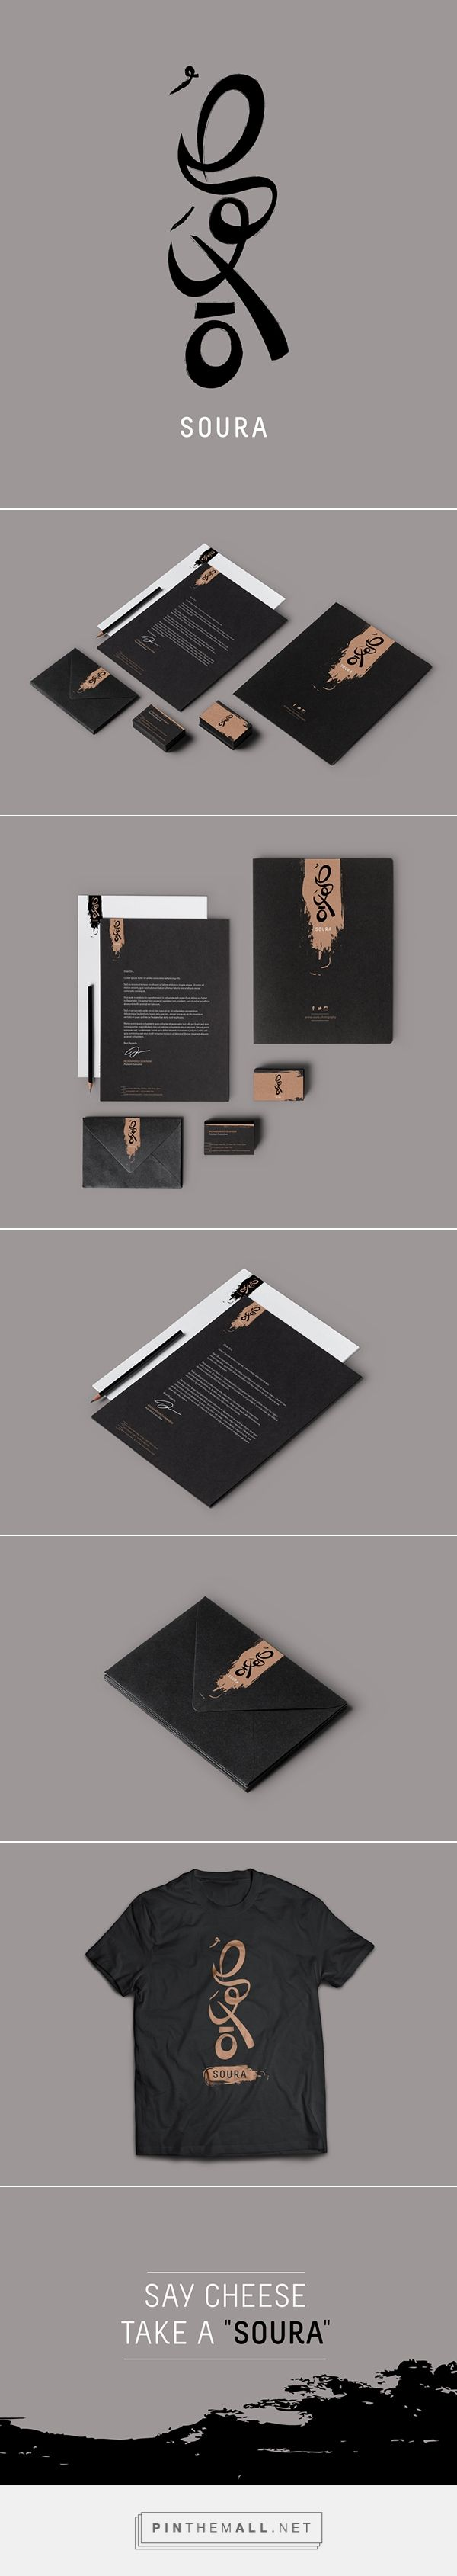 Soura Branding on Behance | Fivestar Branding – Design and Branding Agency & Inspiration Gallery